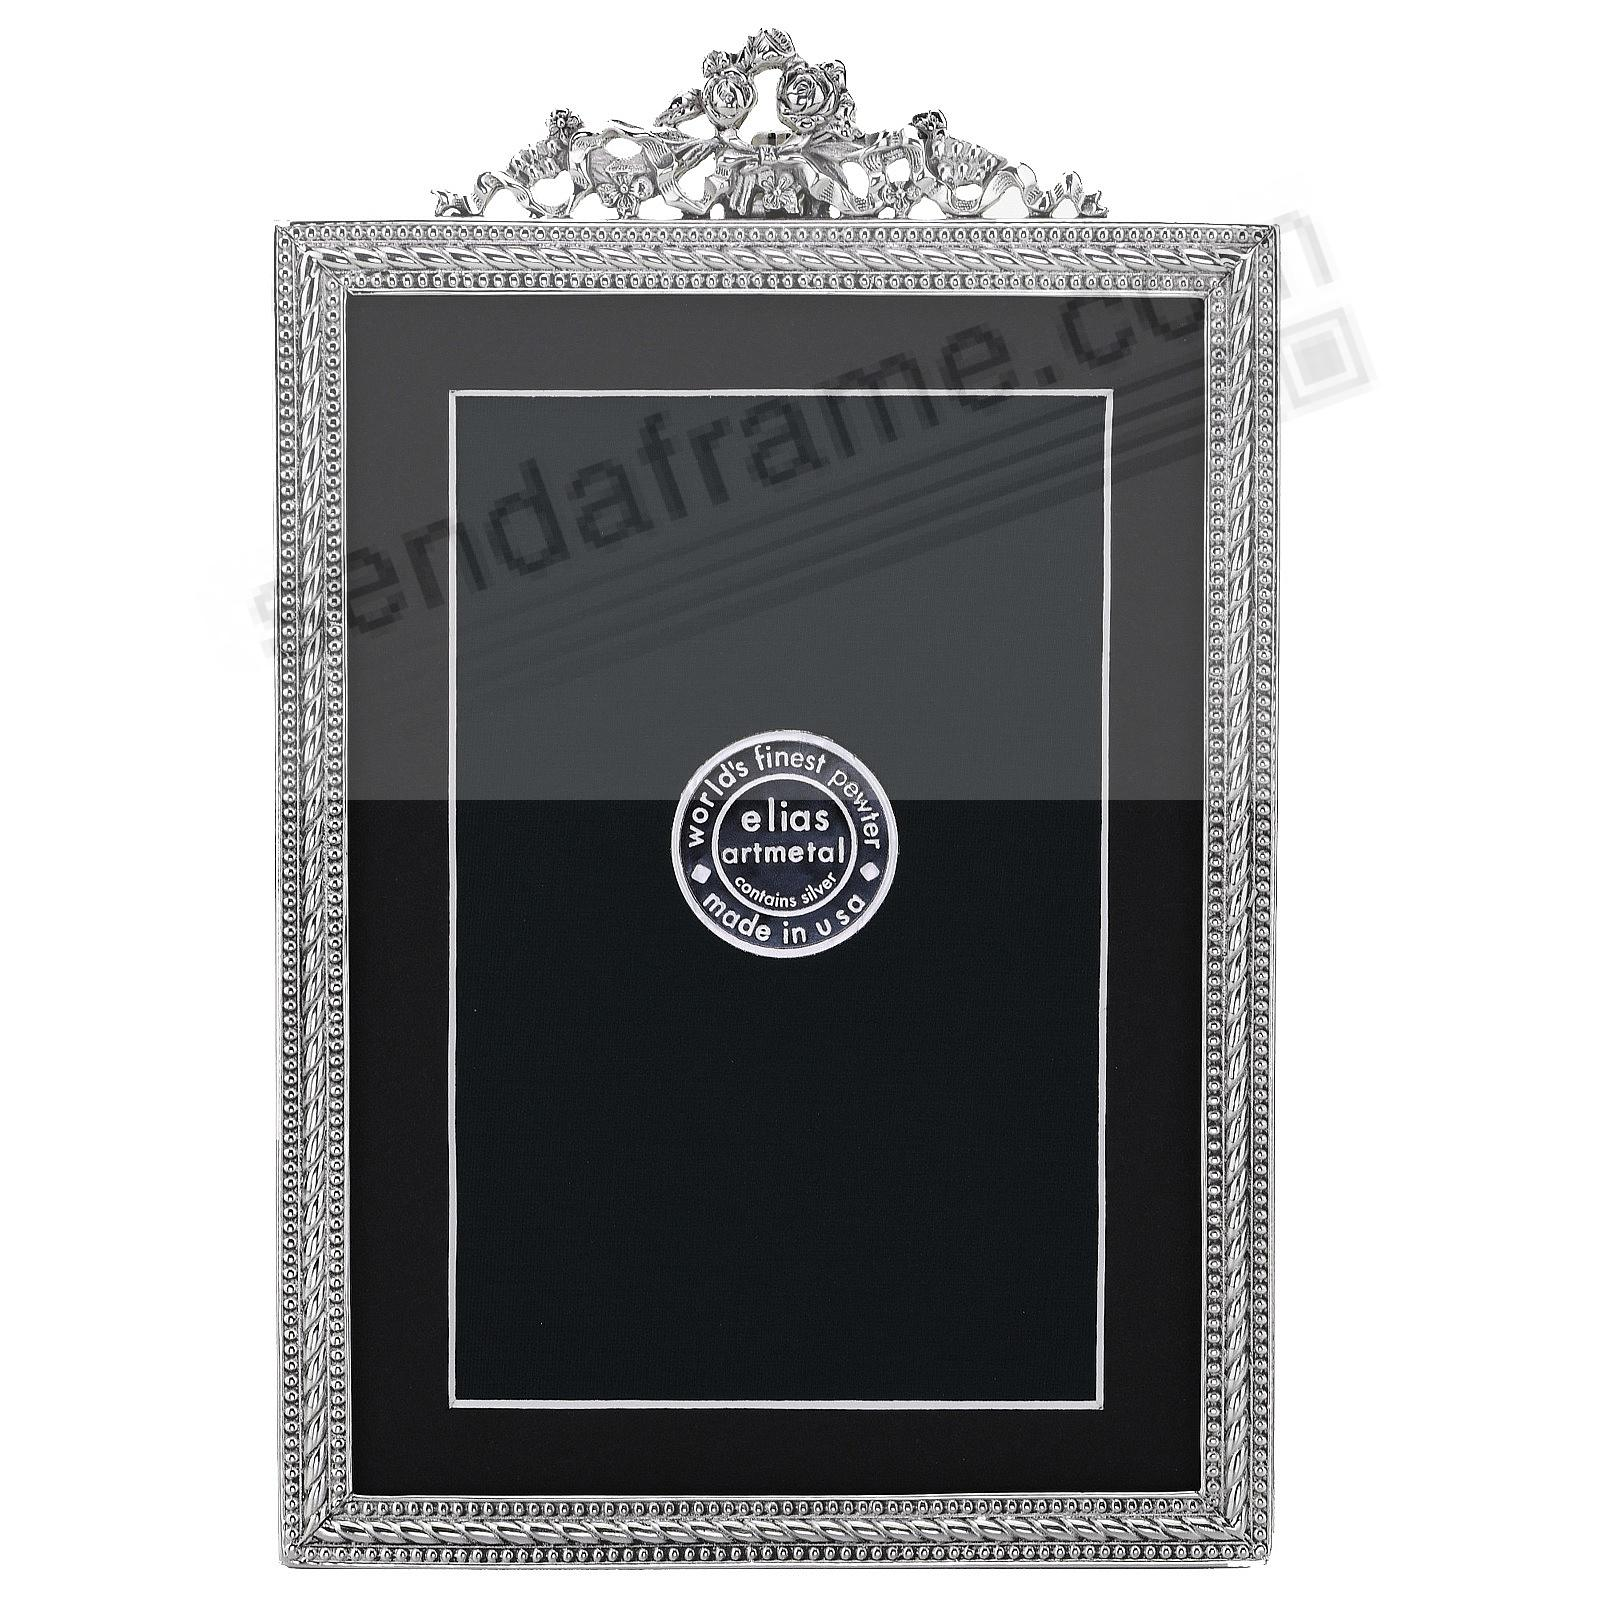 FRENCH REVIVAL BEADING silvered Fine Pewter 5x7/4x6 frame<br>by Elias Artmetal&reg;